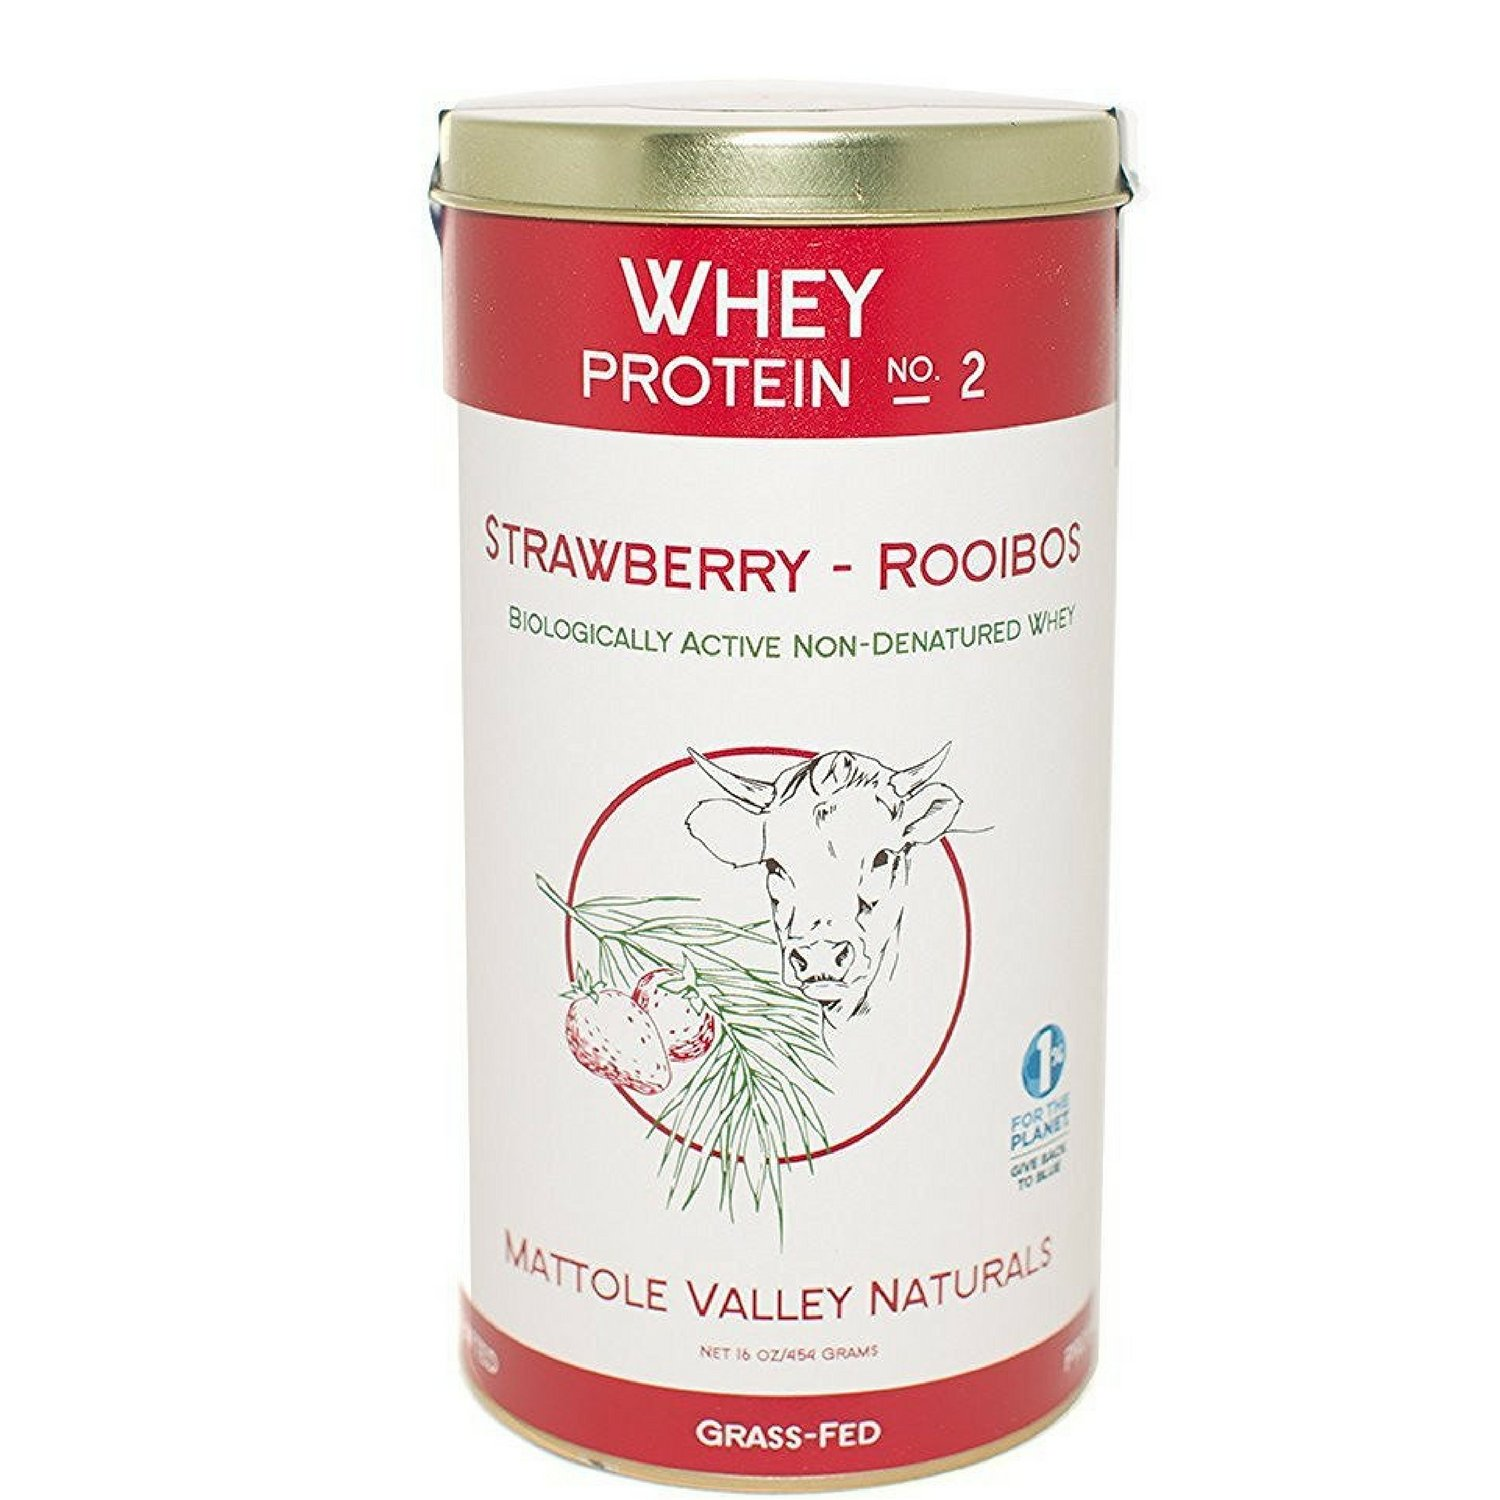 Whey Protein (Strawberry-Rooibos) - Biologically Active - No Antibiotics - Low-Temperature-Processed and Microfiltrated - Made From Happy Australian Open Pasture Grassfed Cows